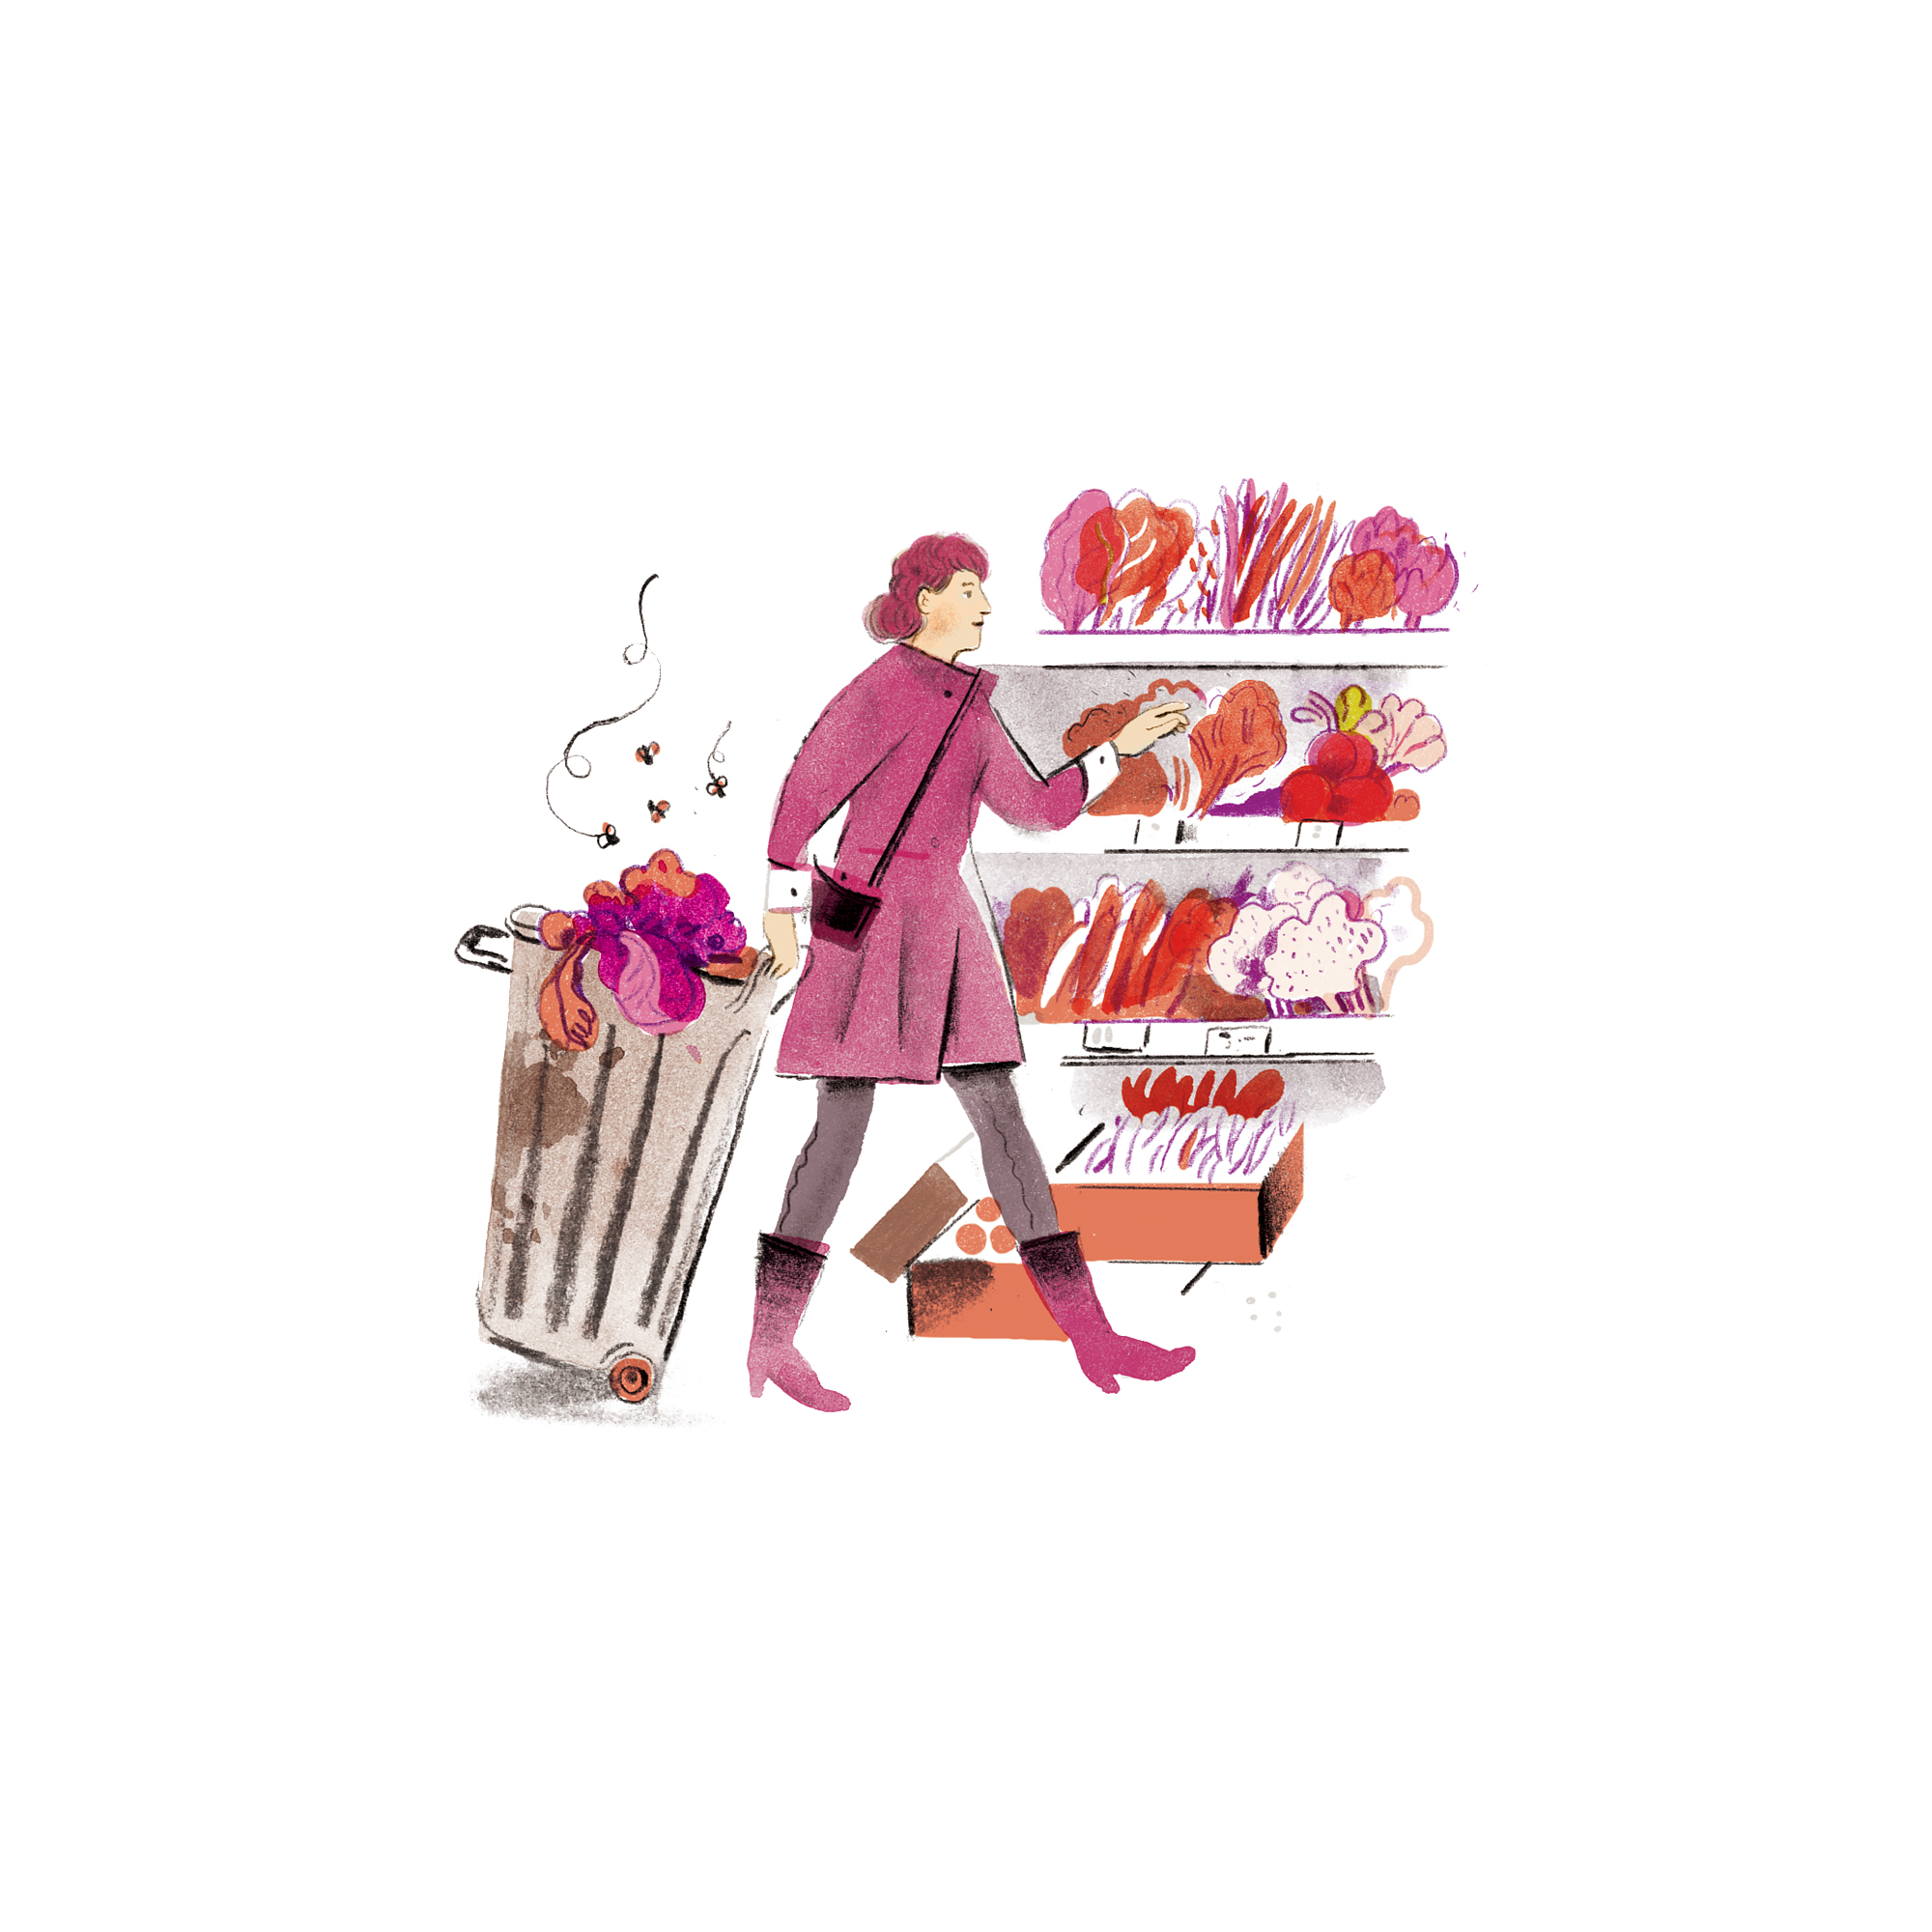 Illustration: woman food shopping with a trash can behind her